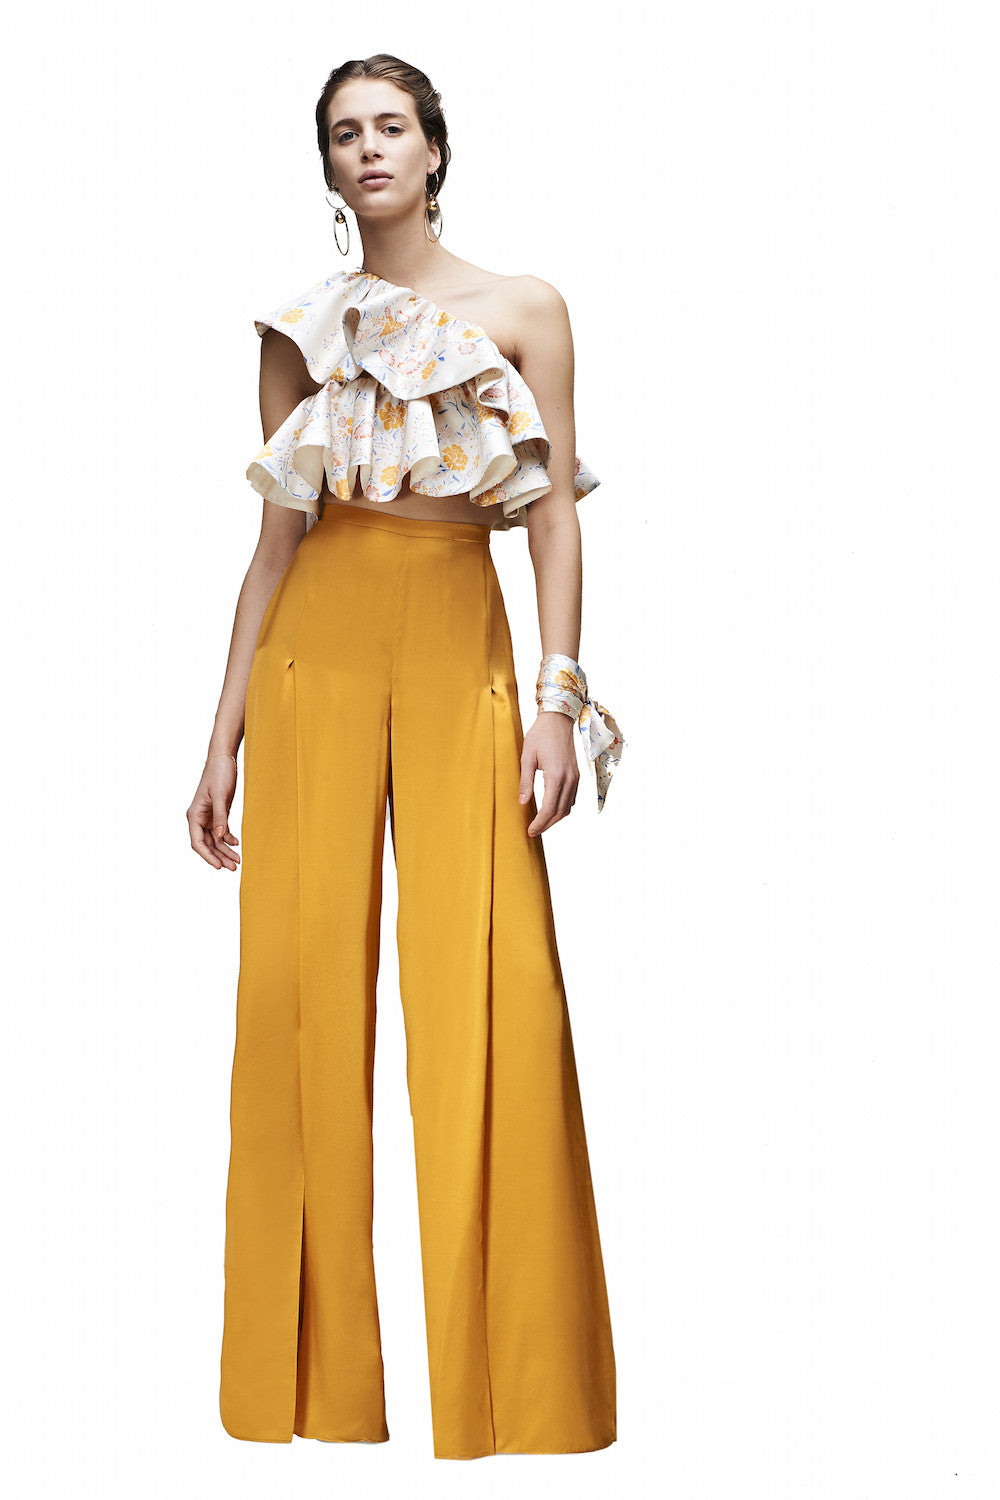 The Ines High-Waisted Pants in Marigold Yellow